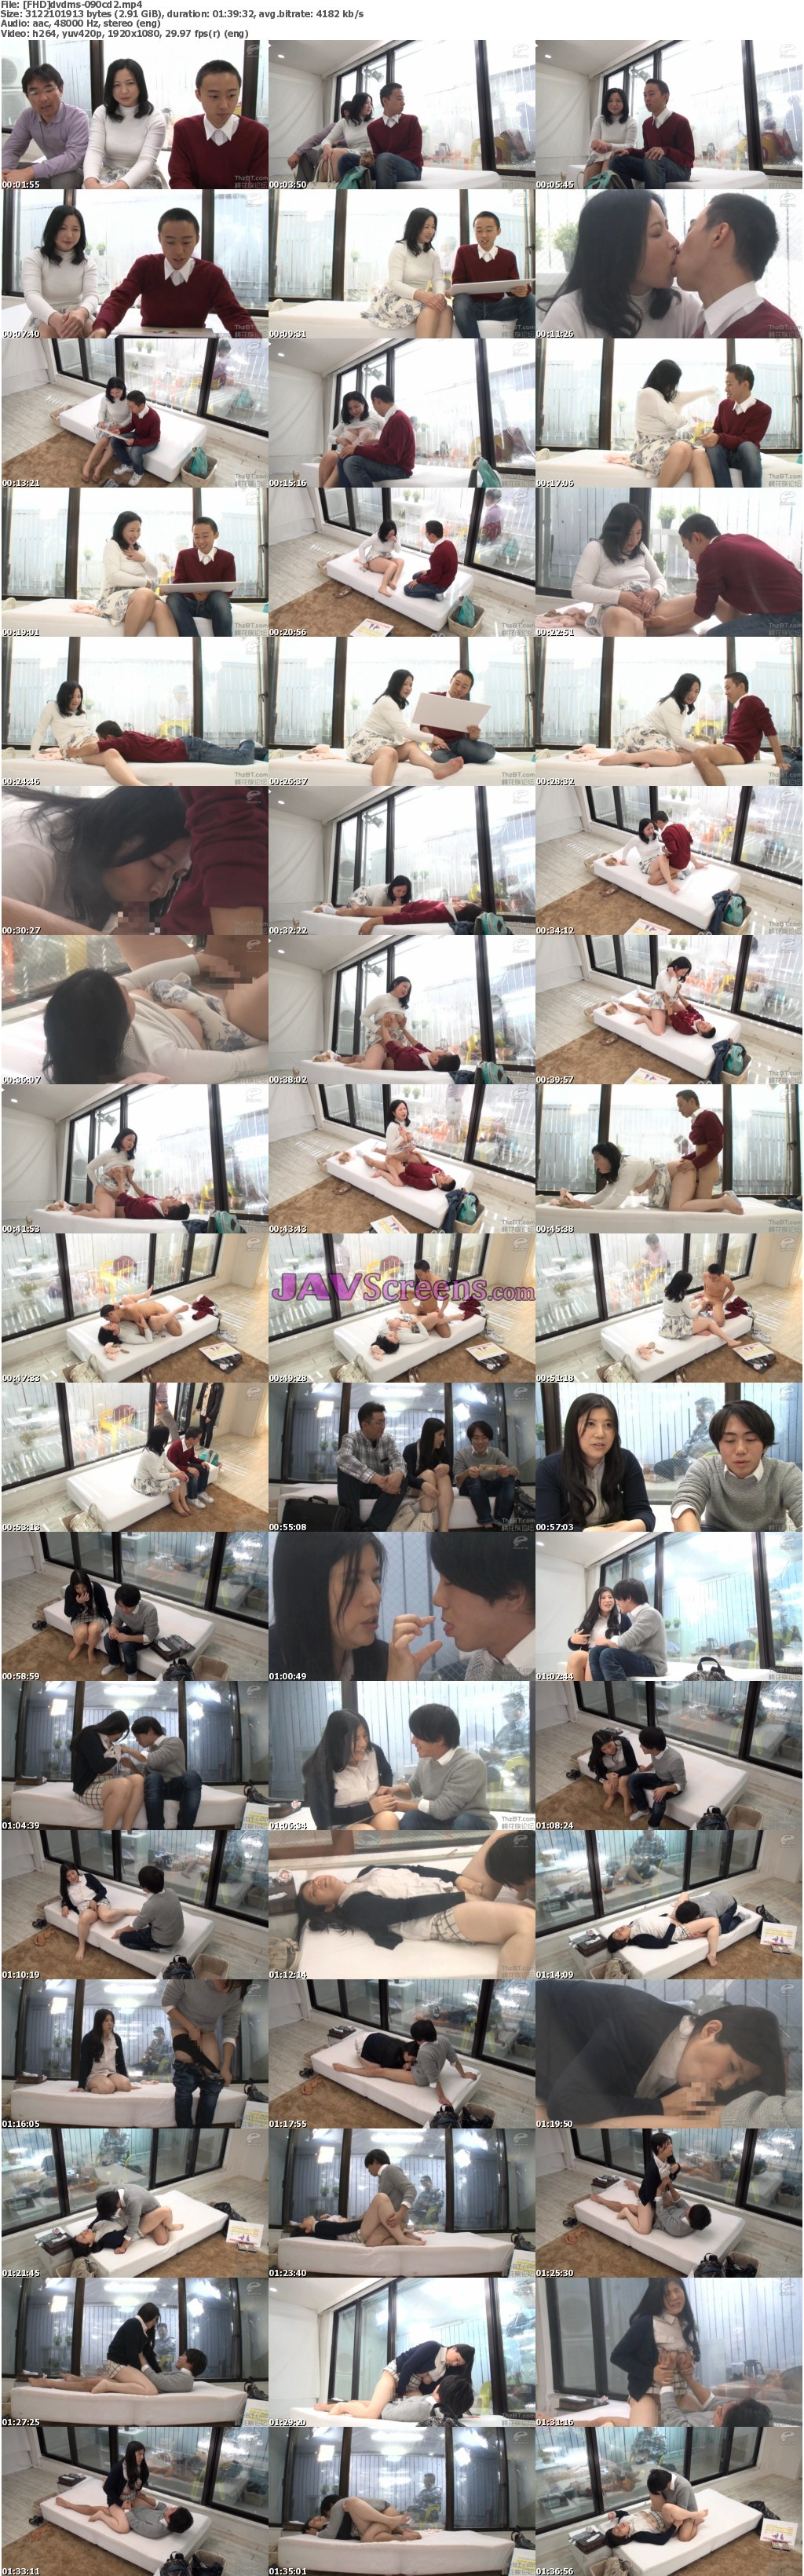 DVDMS-090B.jpg - JAV Screenshot